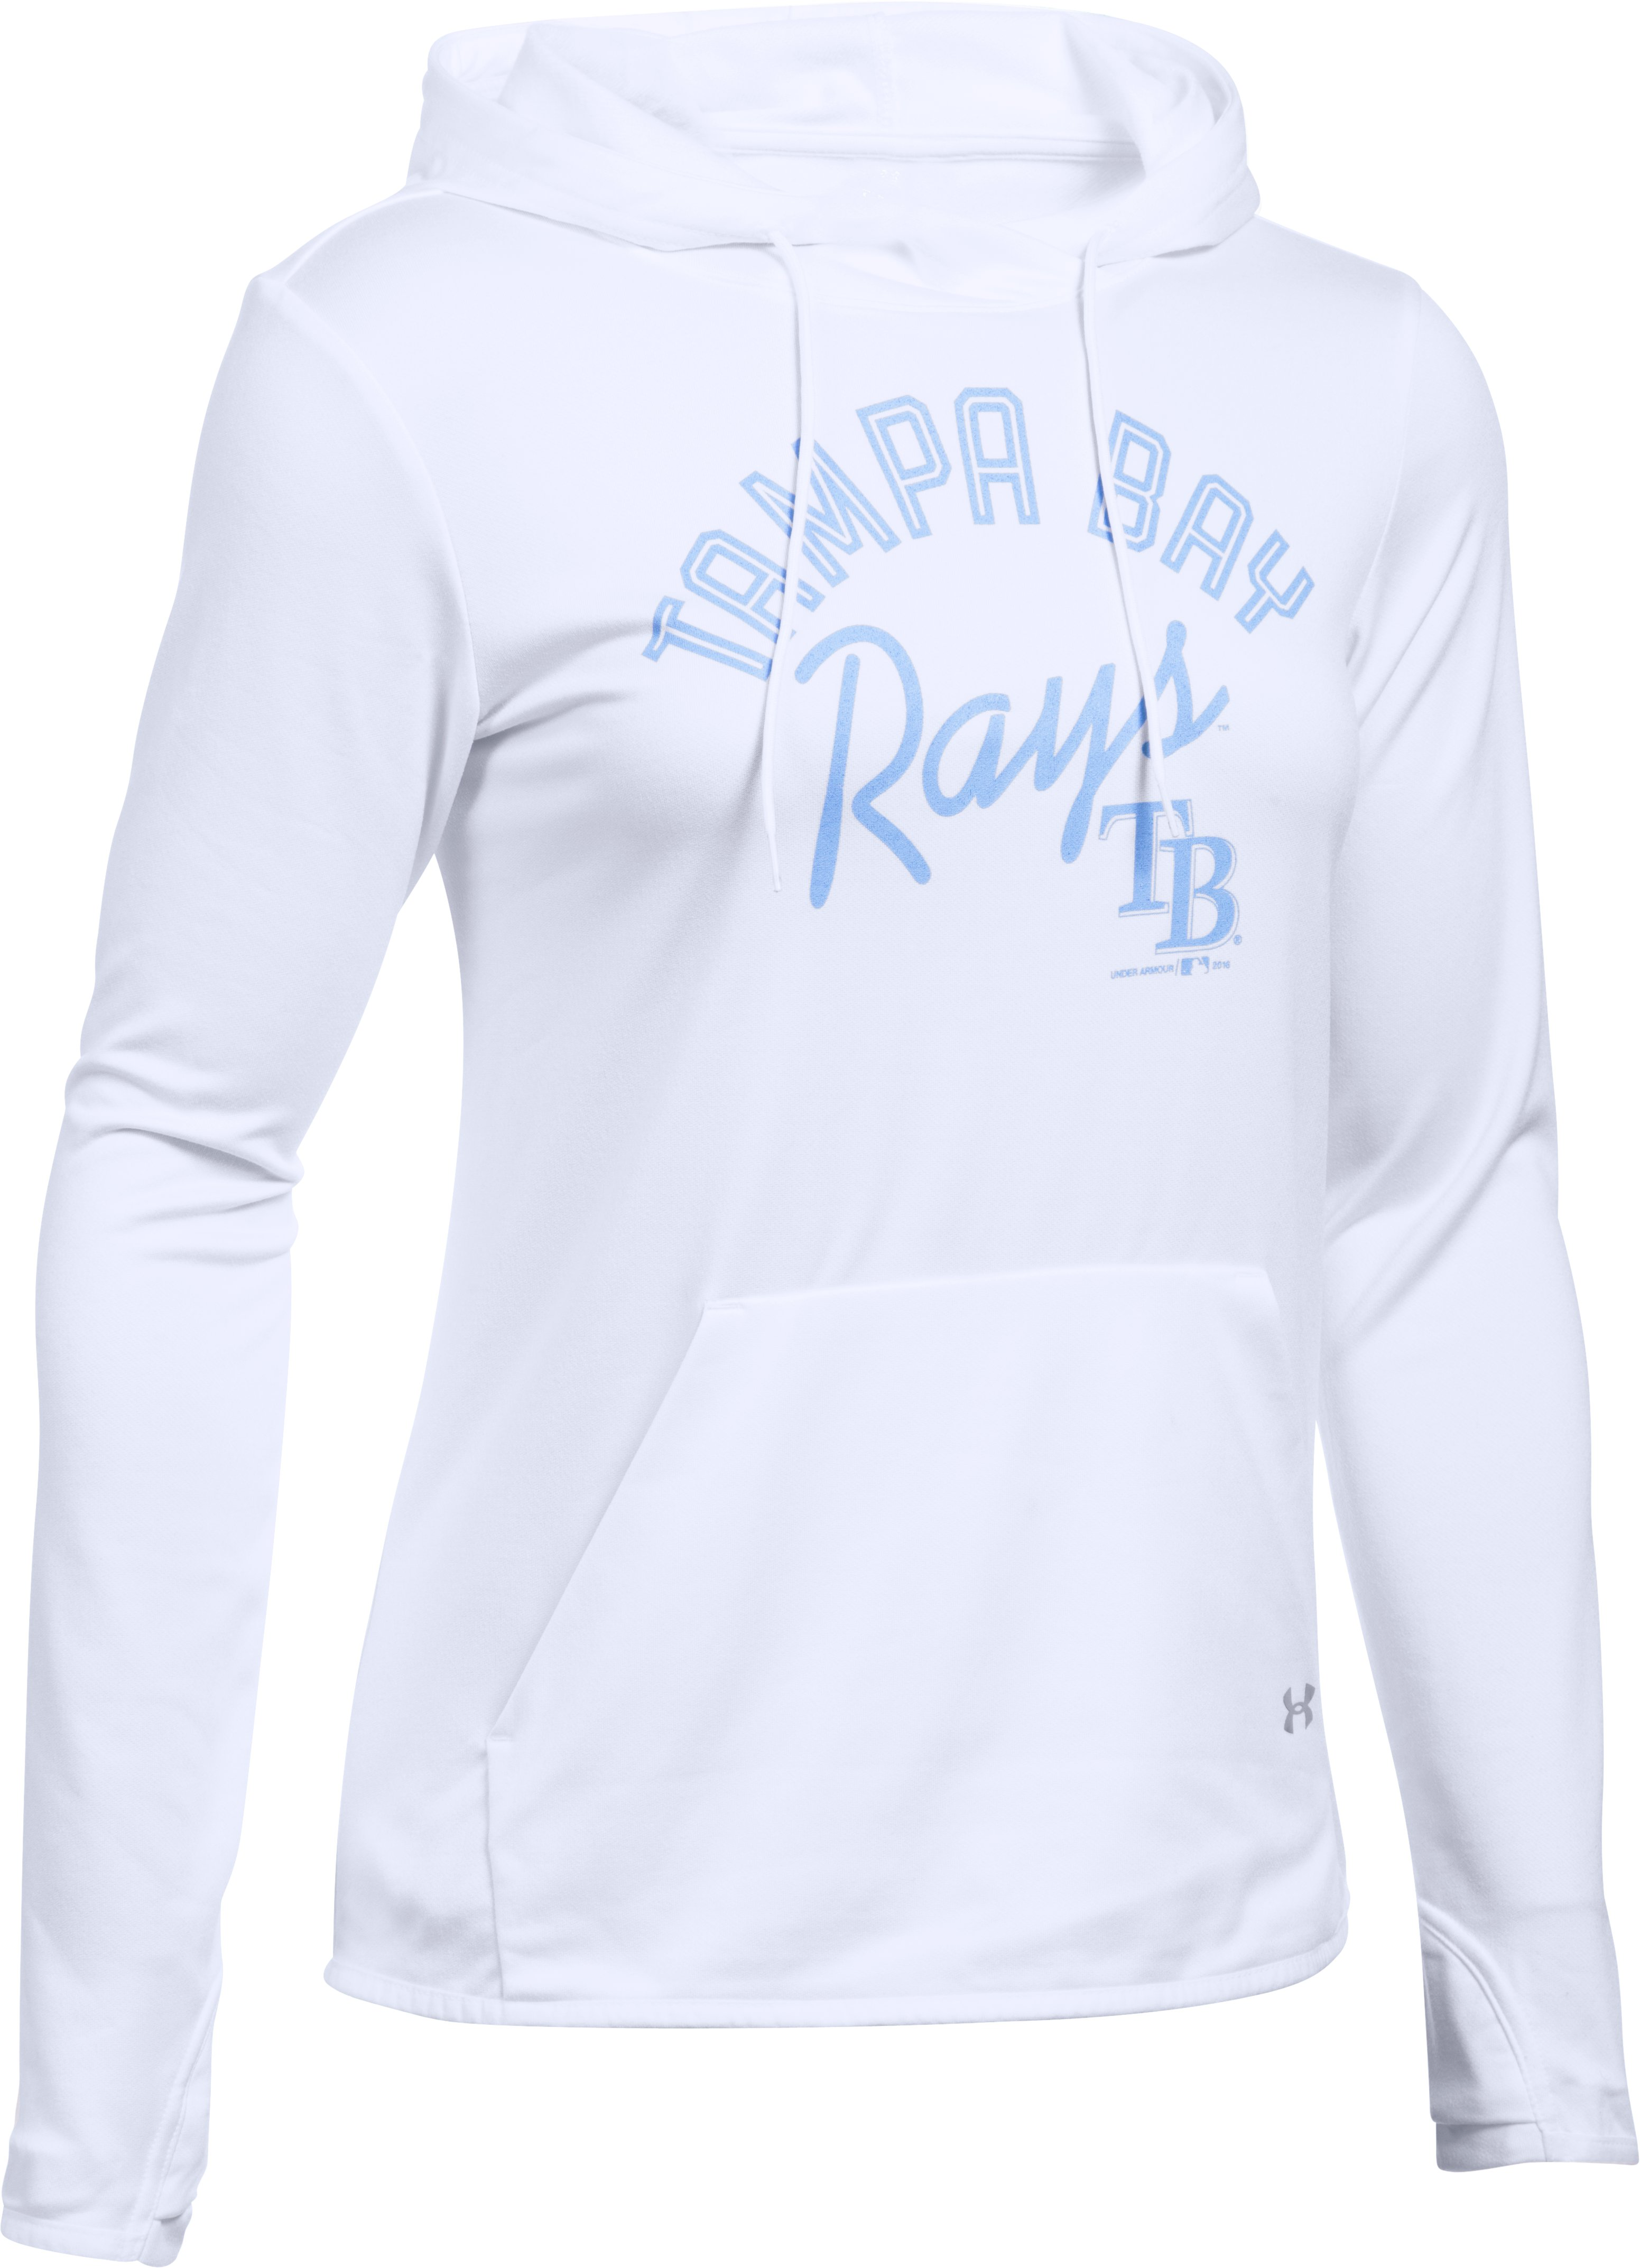 Women's Tampa Bay Rays UA French Terry Hoodie, White